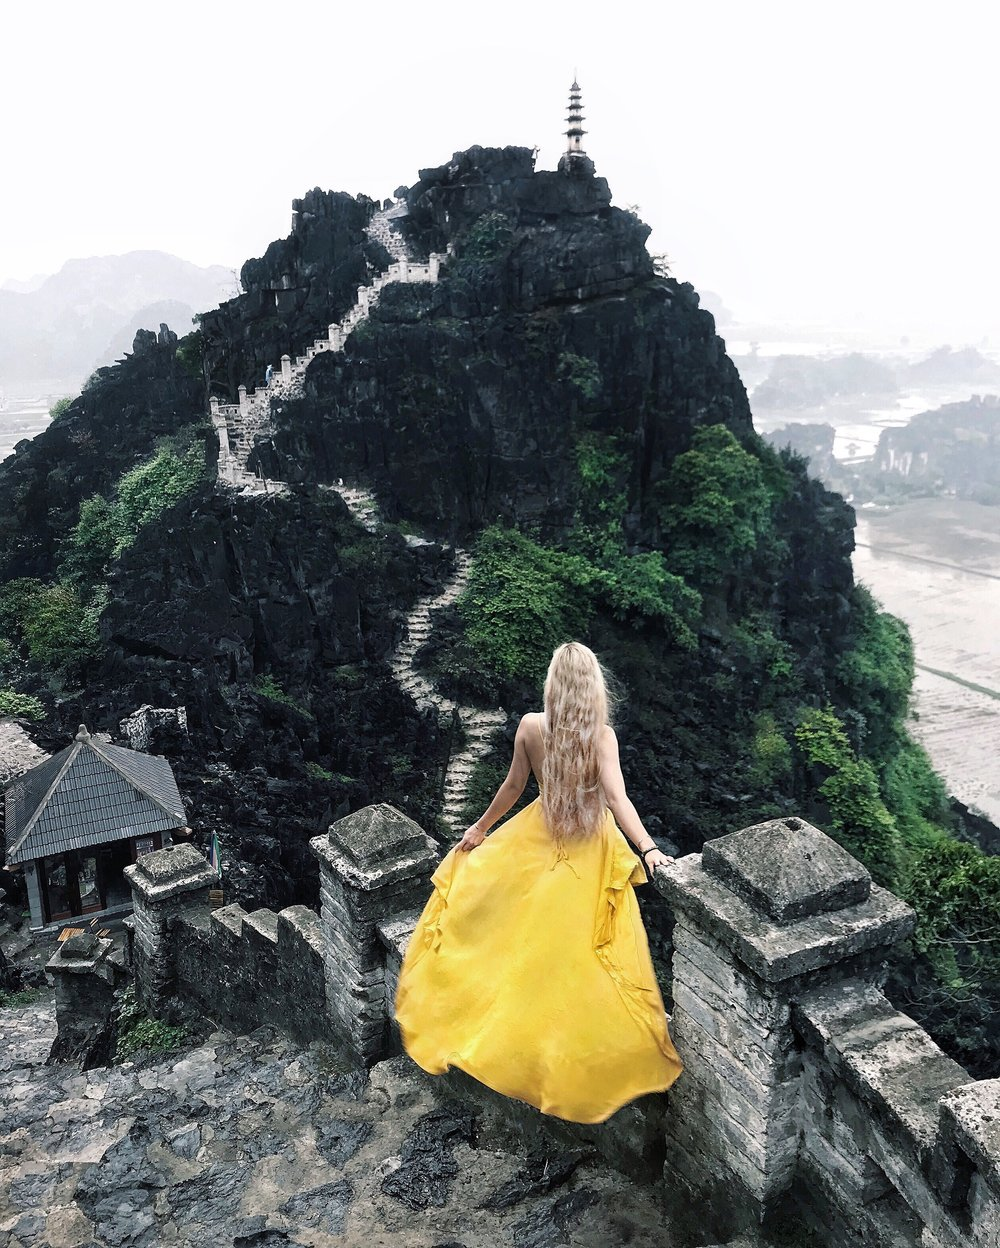 HANG MUA/MUA CAVES  We climbed 500 stone steps in the pouring rain to see this gorgeous view from the top of Hang Mua! It takes less than 30 minutes to reach the summit, and the mountain and river views are so breathtaking! It was one of my favorite spots in Ninh Binh!